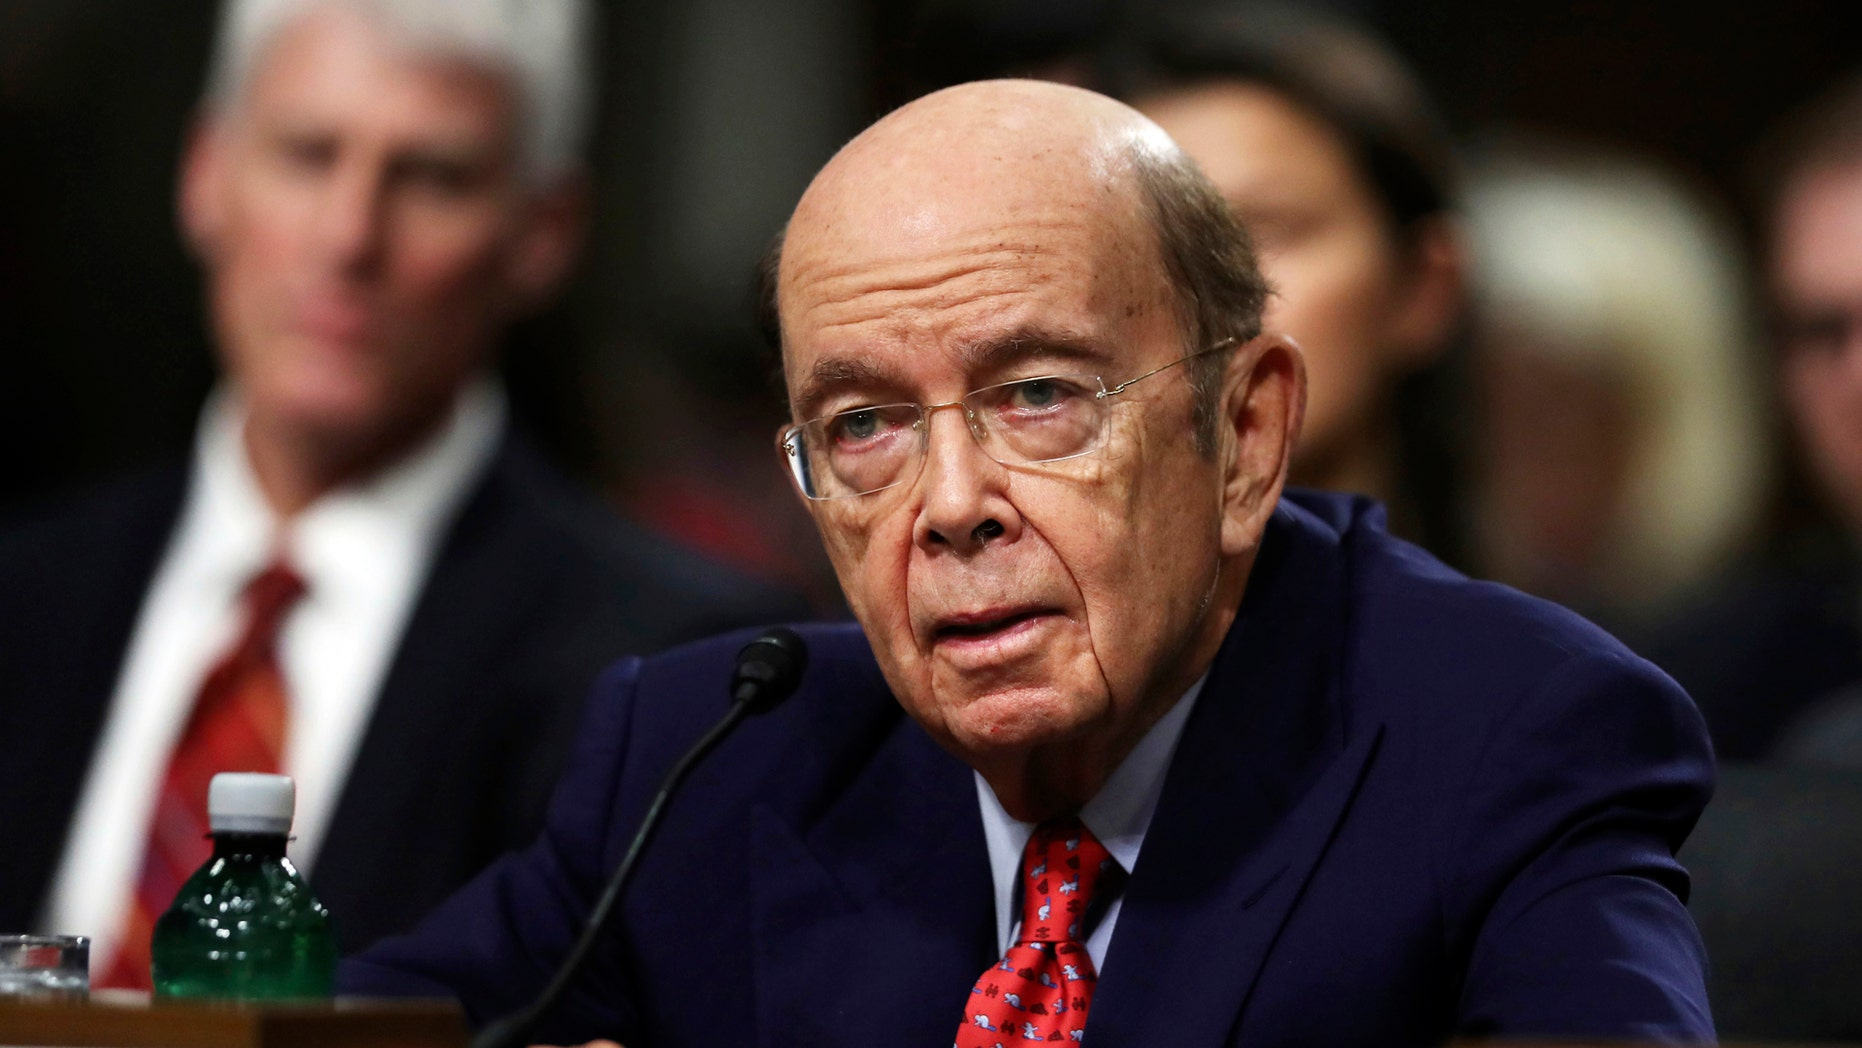 Commerce Secretary Wilbur Ross can't be questioned in lawsuits challenging his decision to add a citizenship question to the 2020 census, the Supreme Court ordered.